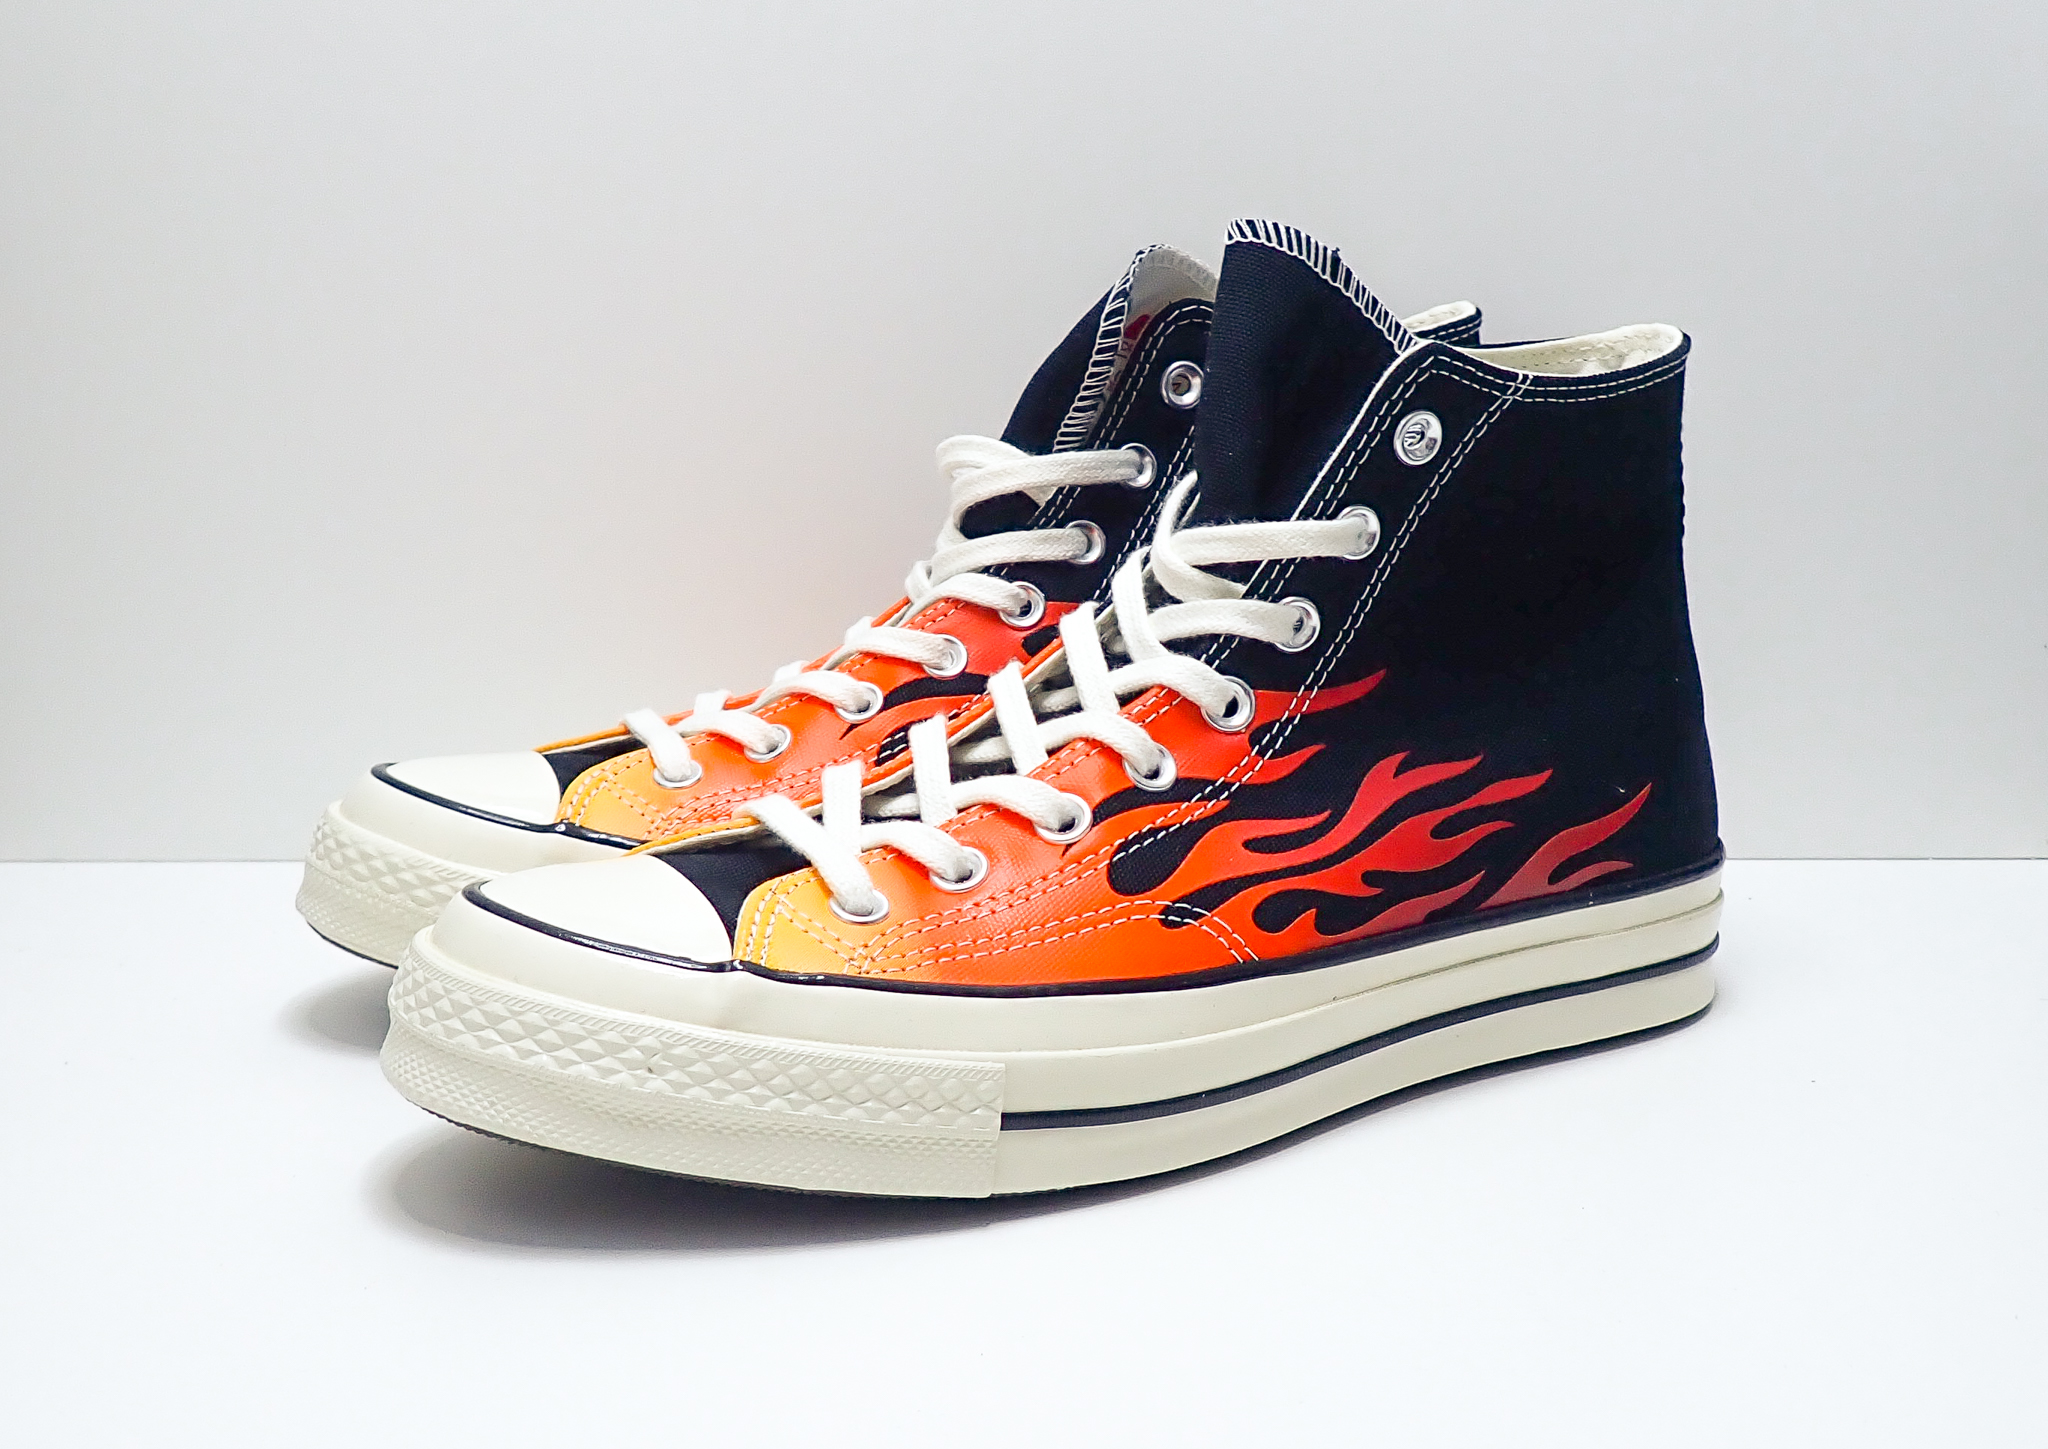 Converse Chuck Taylor All-Star 70s Hi Archive Print Flames